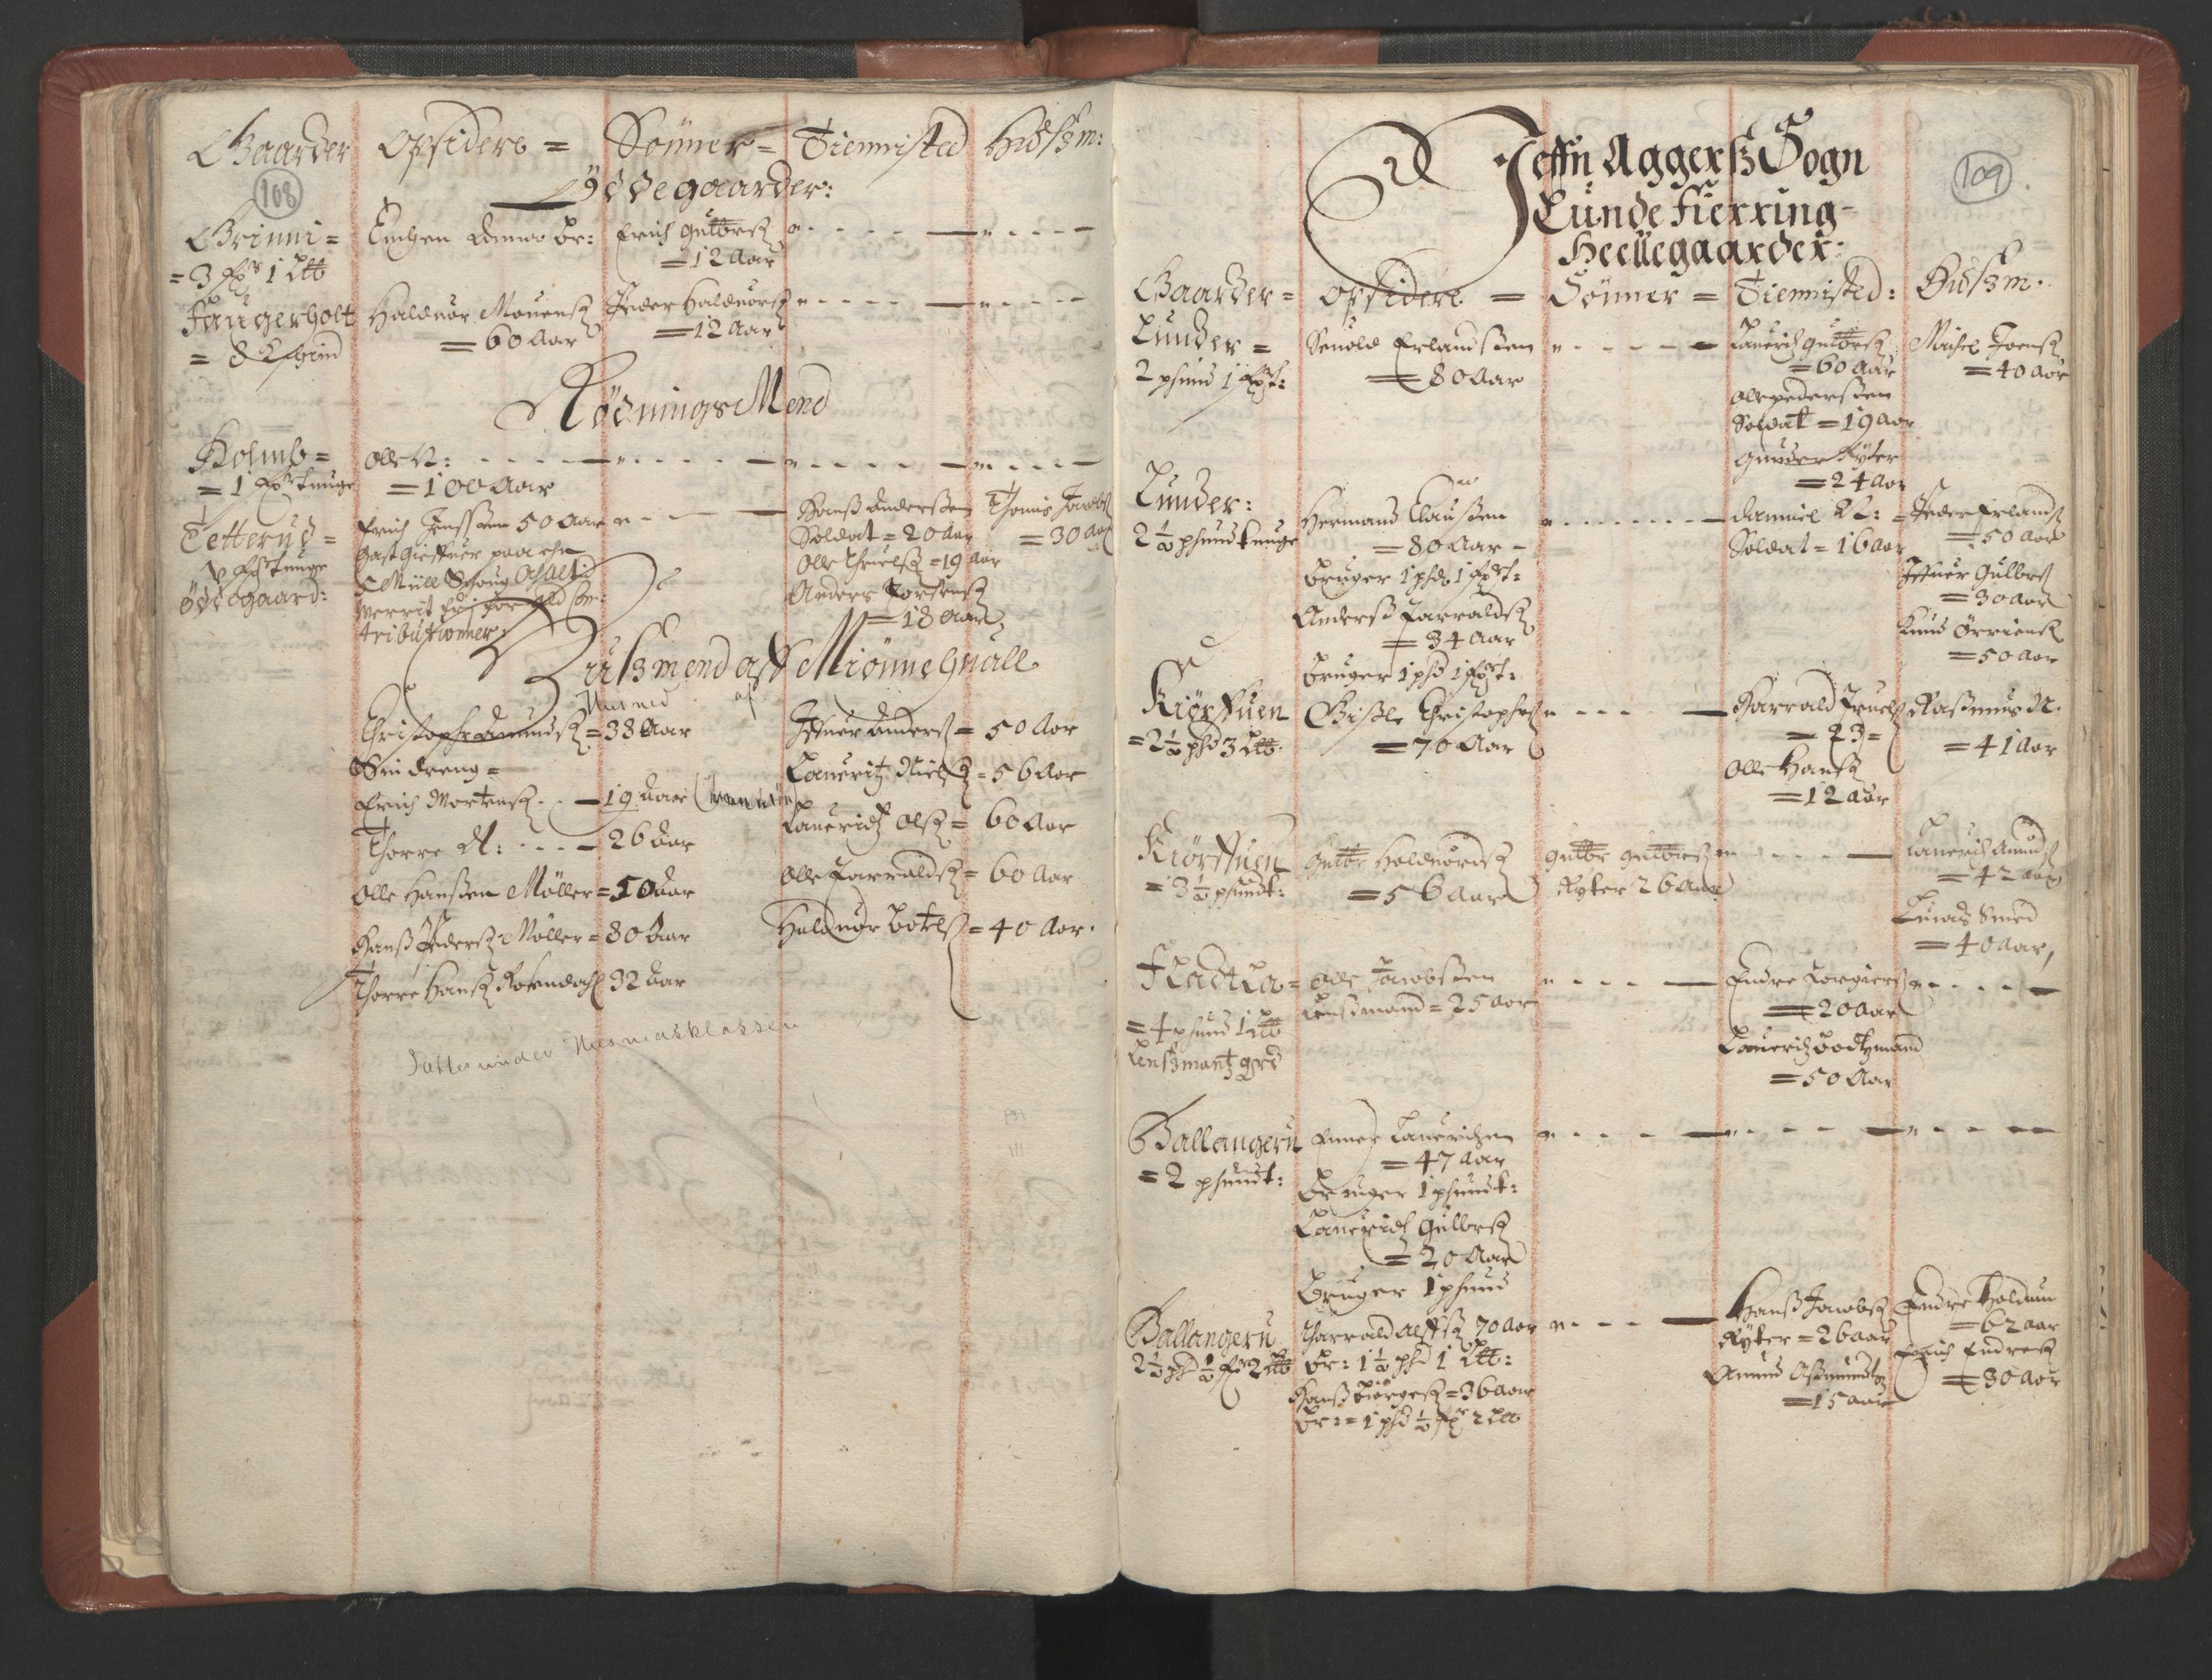 RA, Bailiff's Census 1664-1666, no. 4: Hadeland and Valdres fogderi and Gudbrandsdal fogderi, 1664, p. 108-109